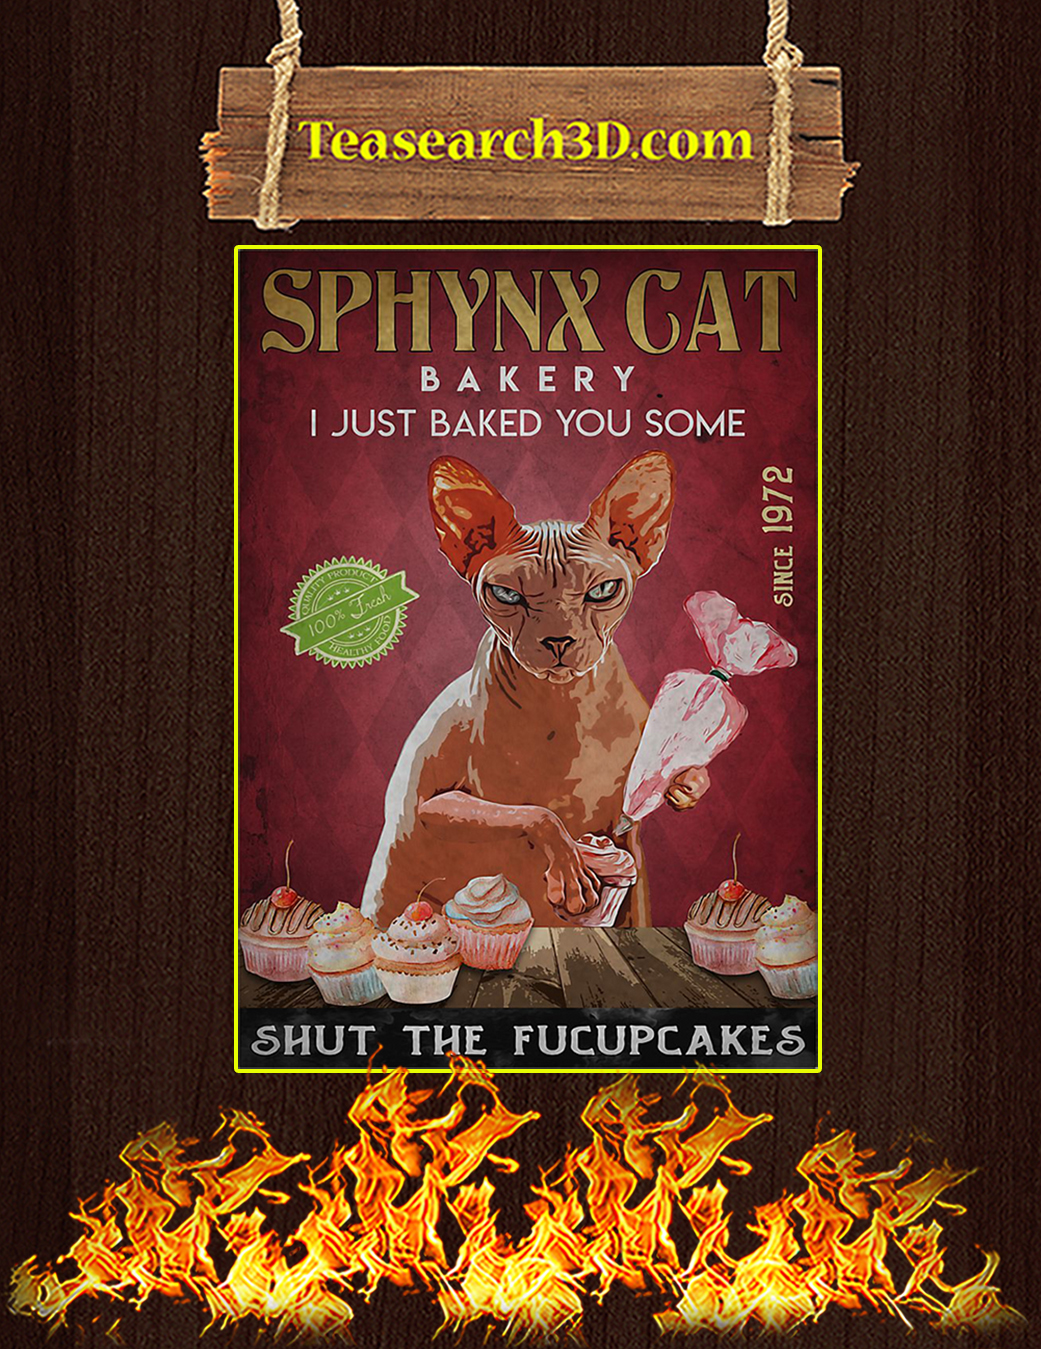 Sphynx Cat Bakery I Just Baked You Some Shut The Fucupcakes Poster A1